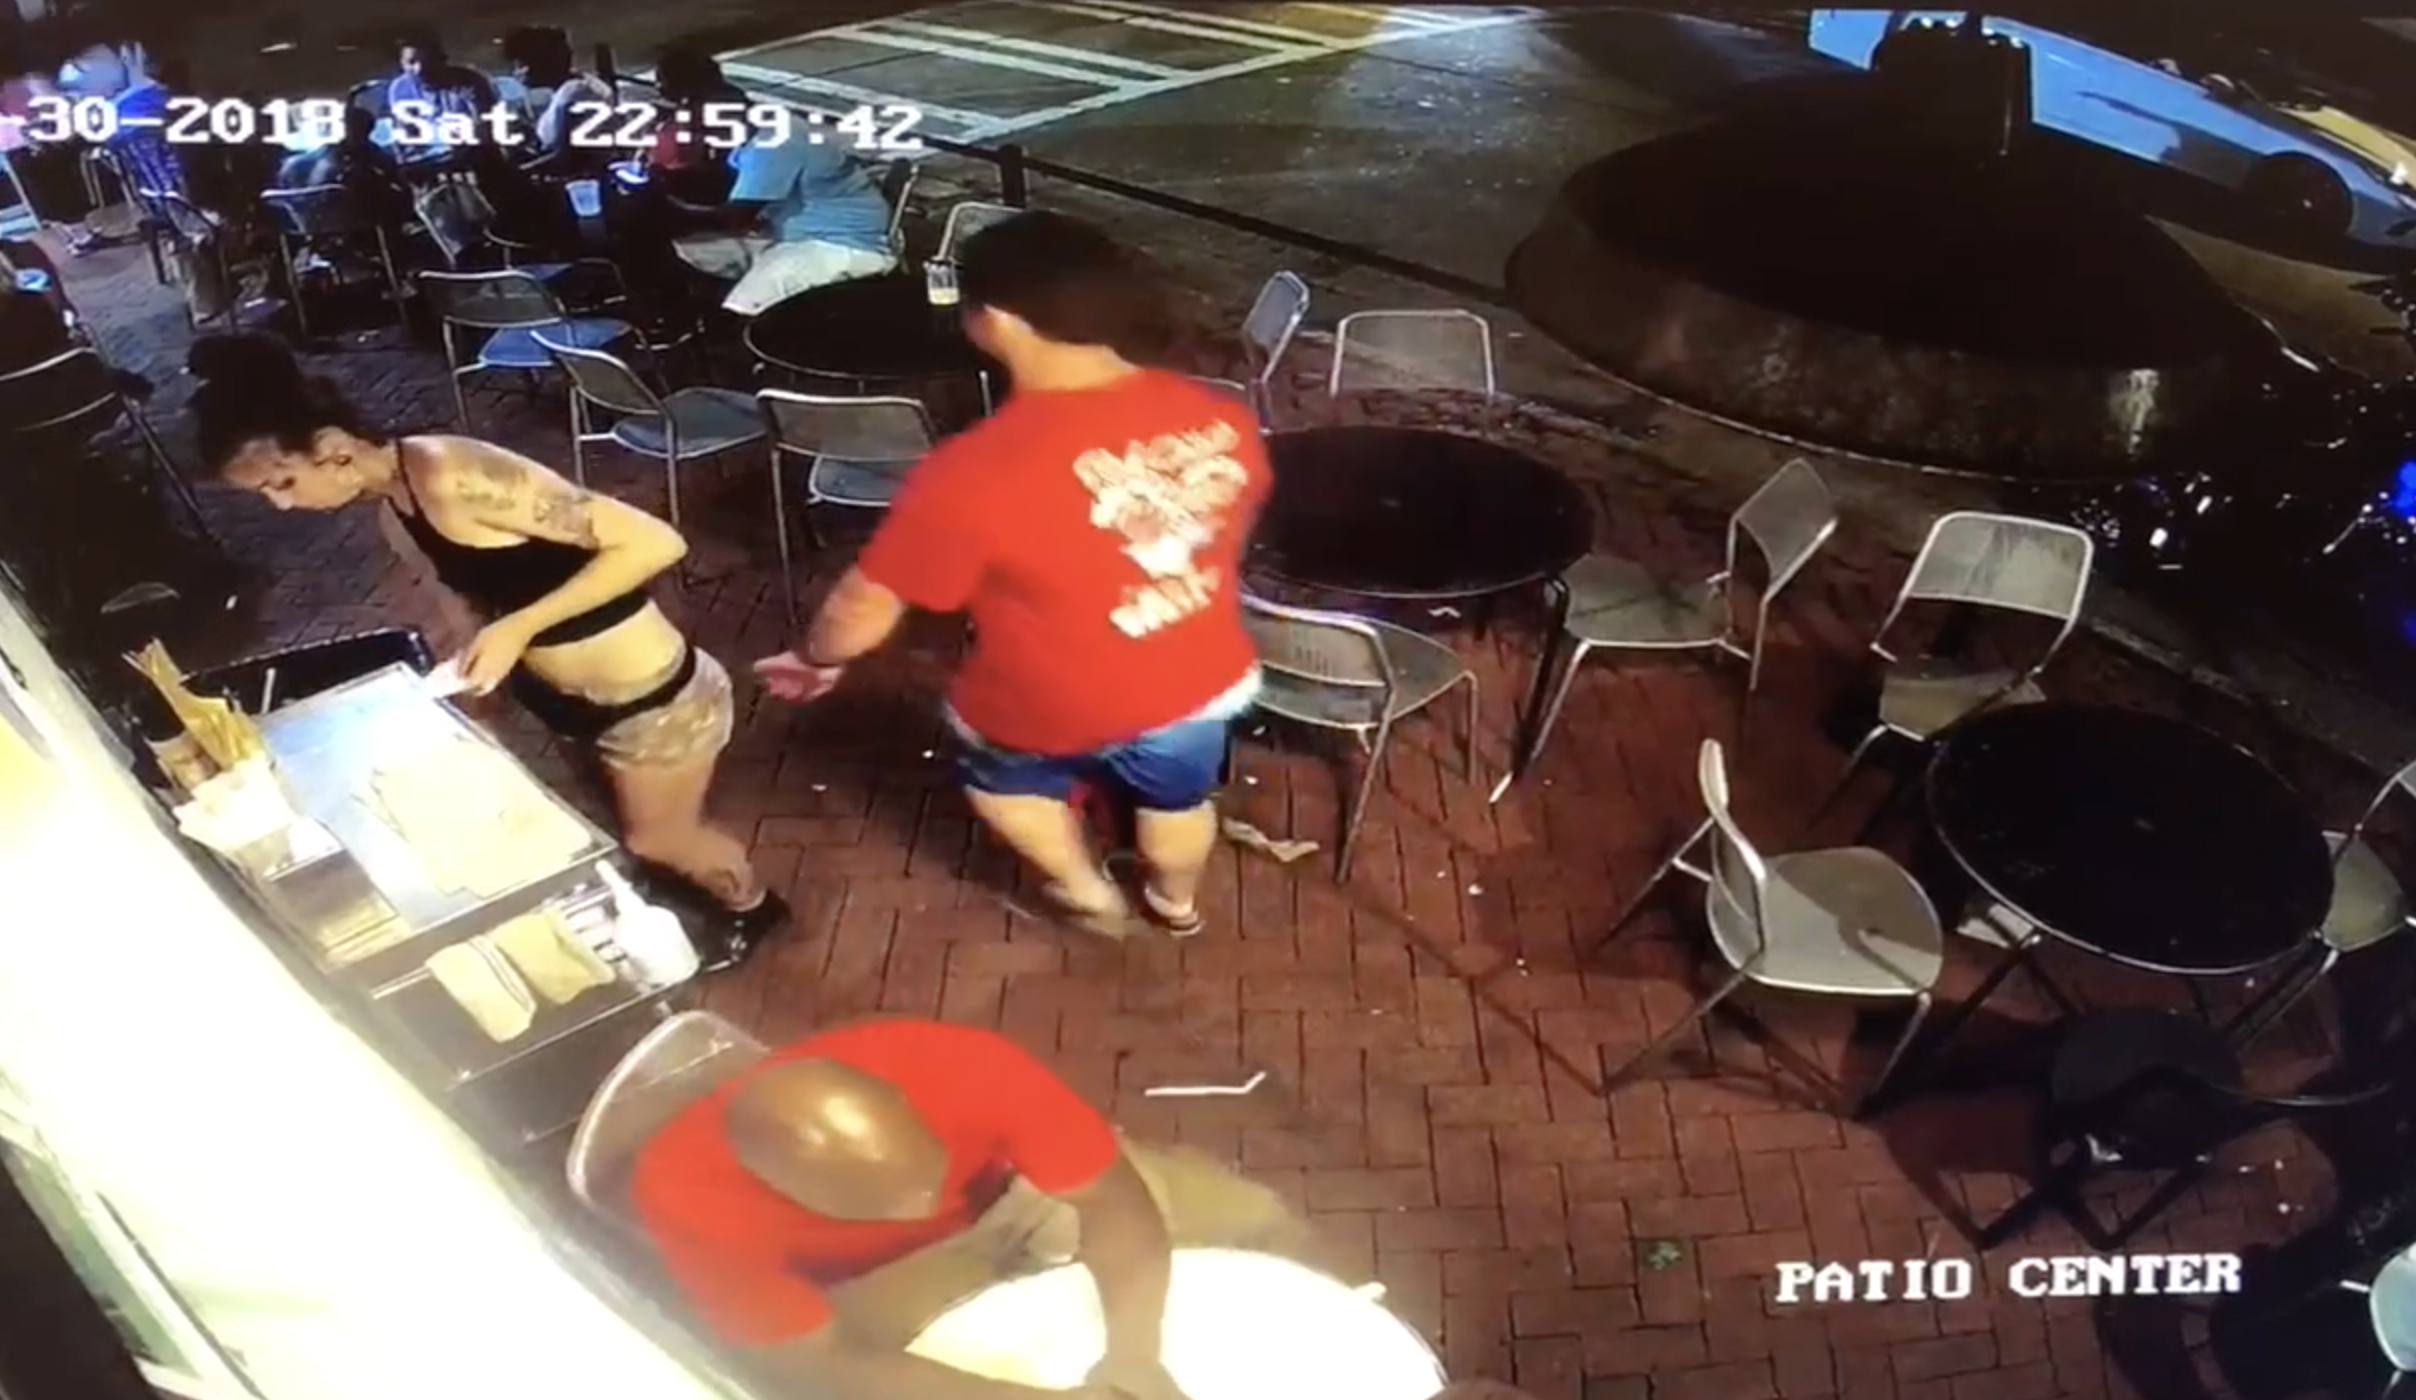 Waitress Who Tackled Groper Says She's Glad To Empower Women